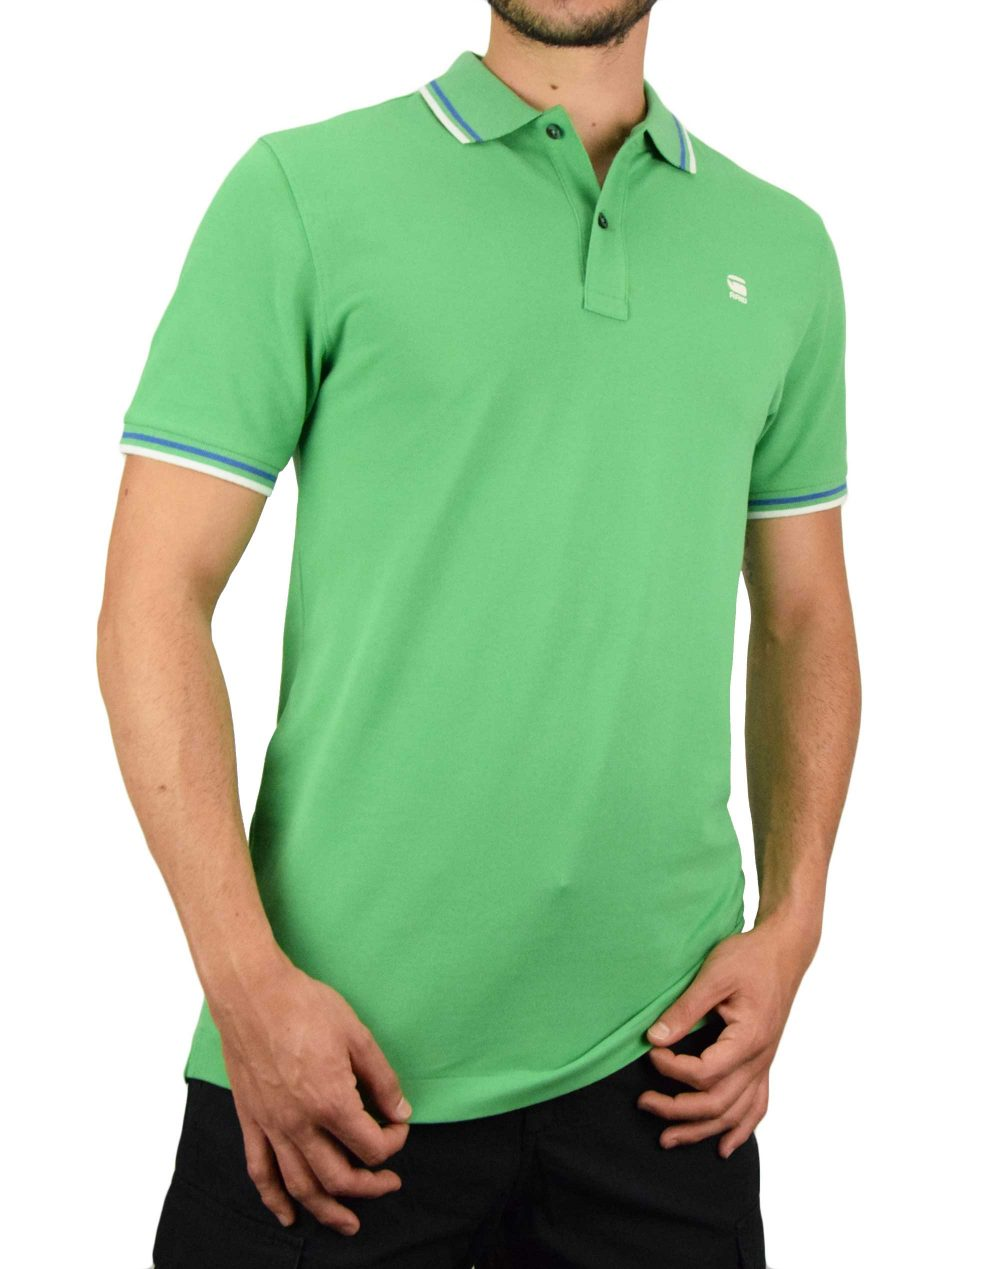 G-Star Raw Dunda Slim Stripe Polo (D17127-5864-1149) Light Leaf